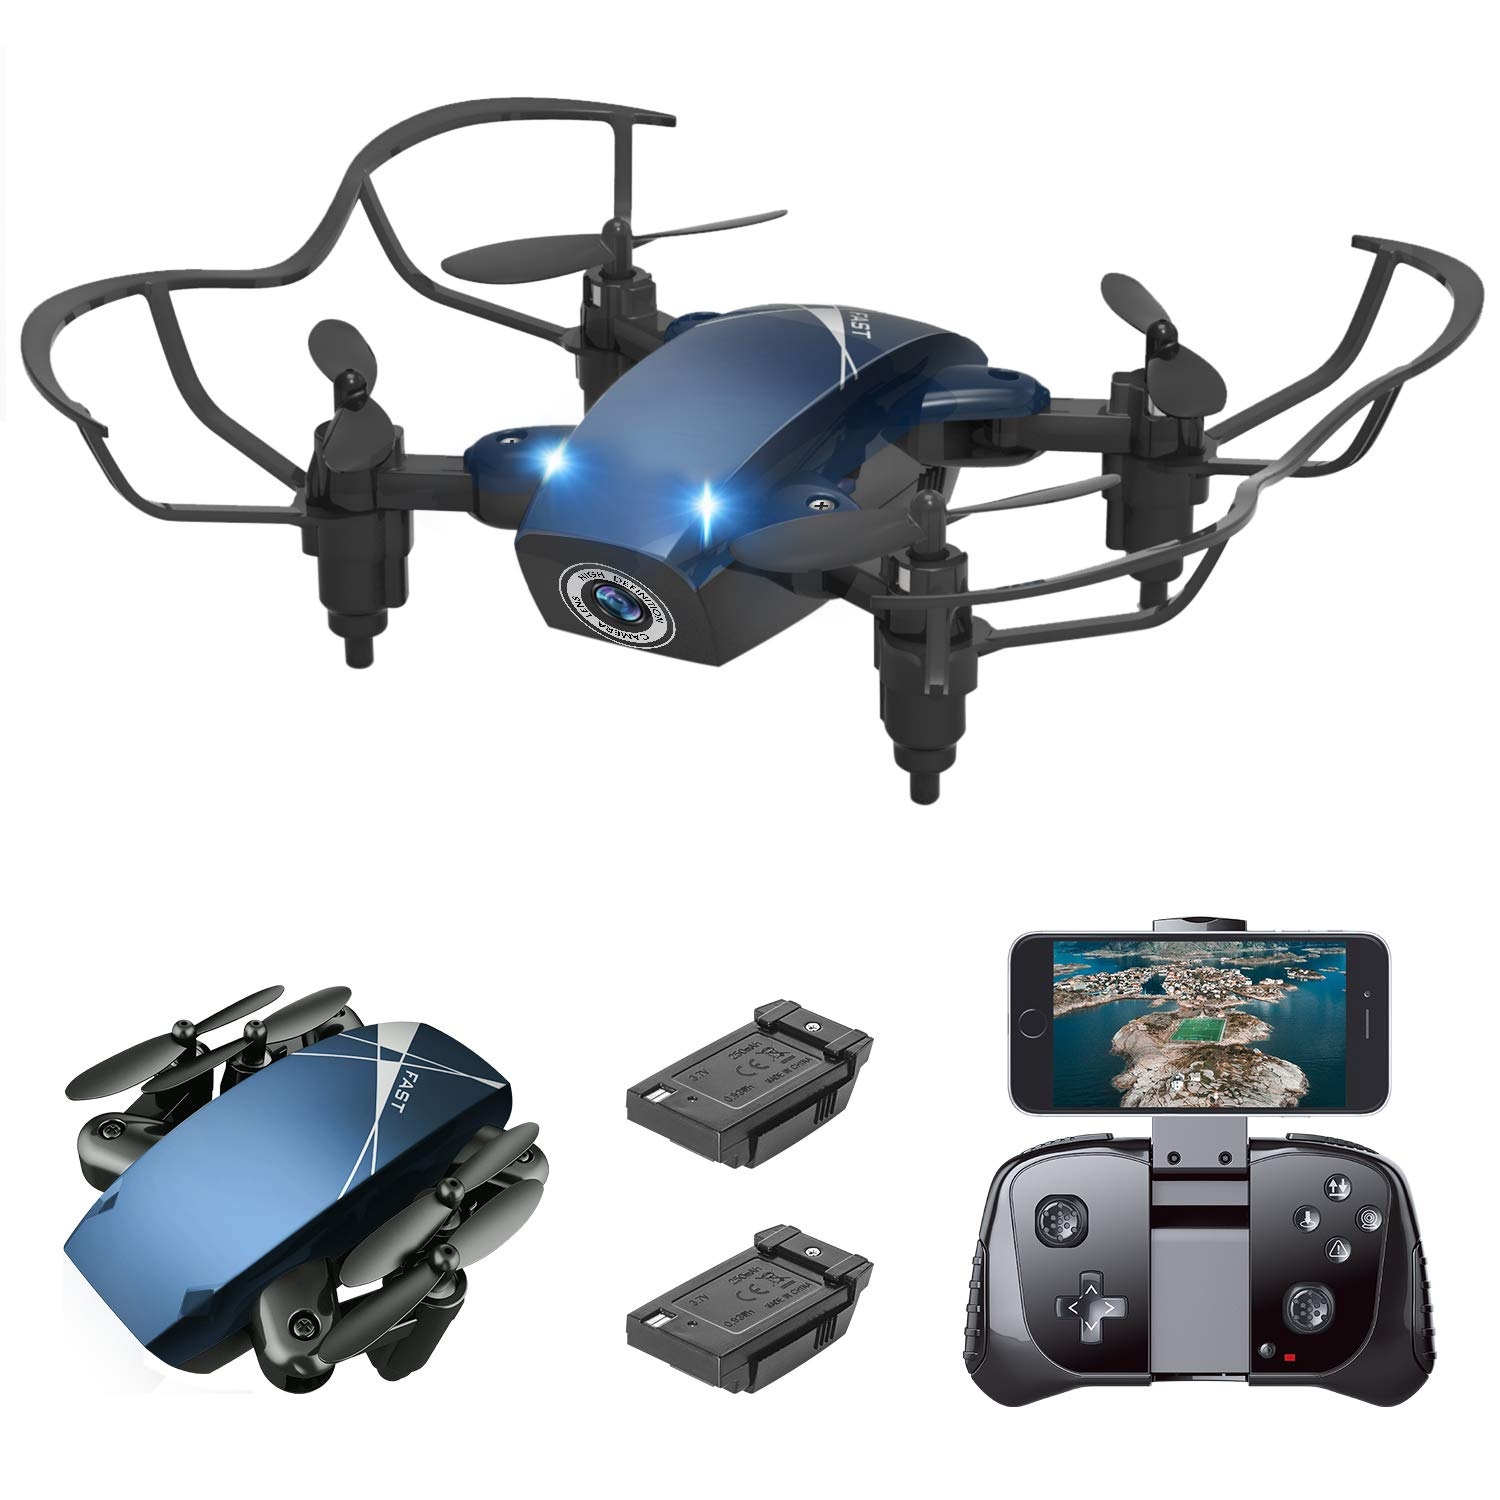 S9M Mini Drone, Supkiir 4-AXIS Drone with 720P HD Camera, Mini RC Quadcopter for Kids Beginners Adult, Foldable FPV WiFi Helicopter, Attitude Hold, 3D Flips, Gravity Control and Trajectory Flight by Supkiir